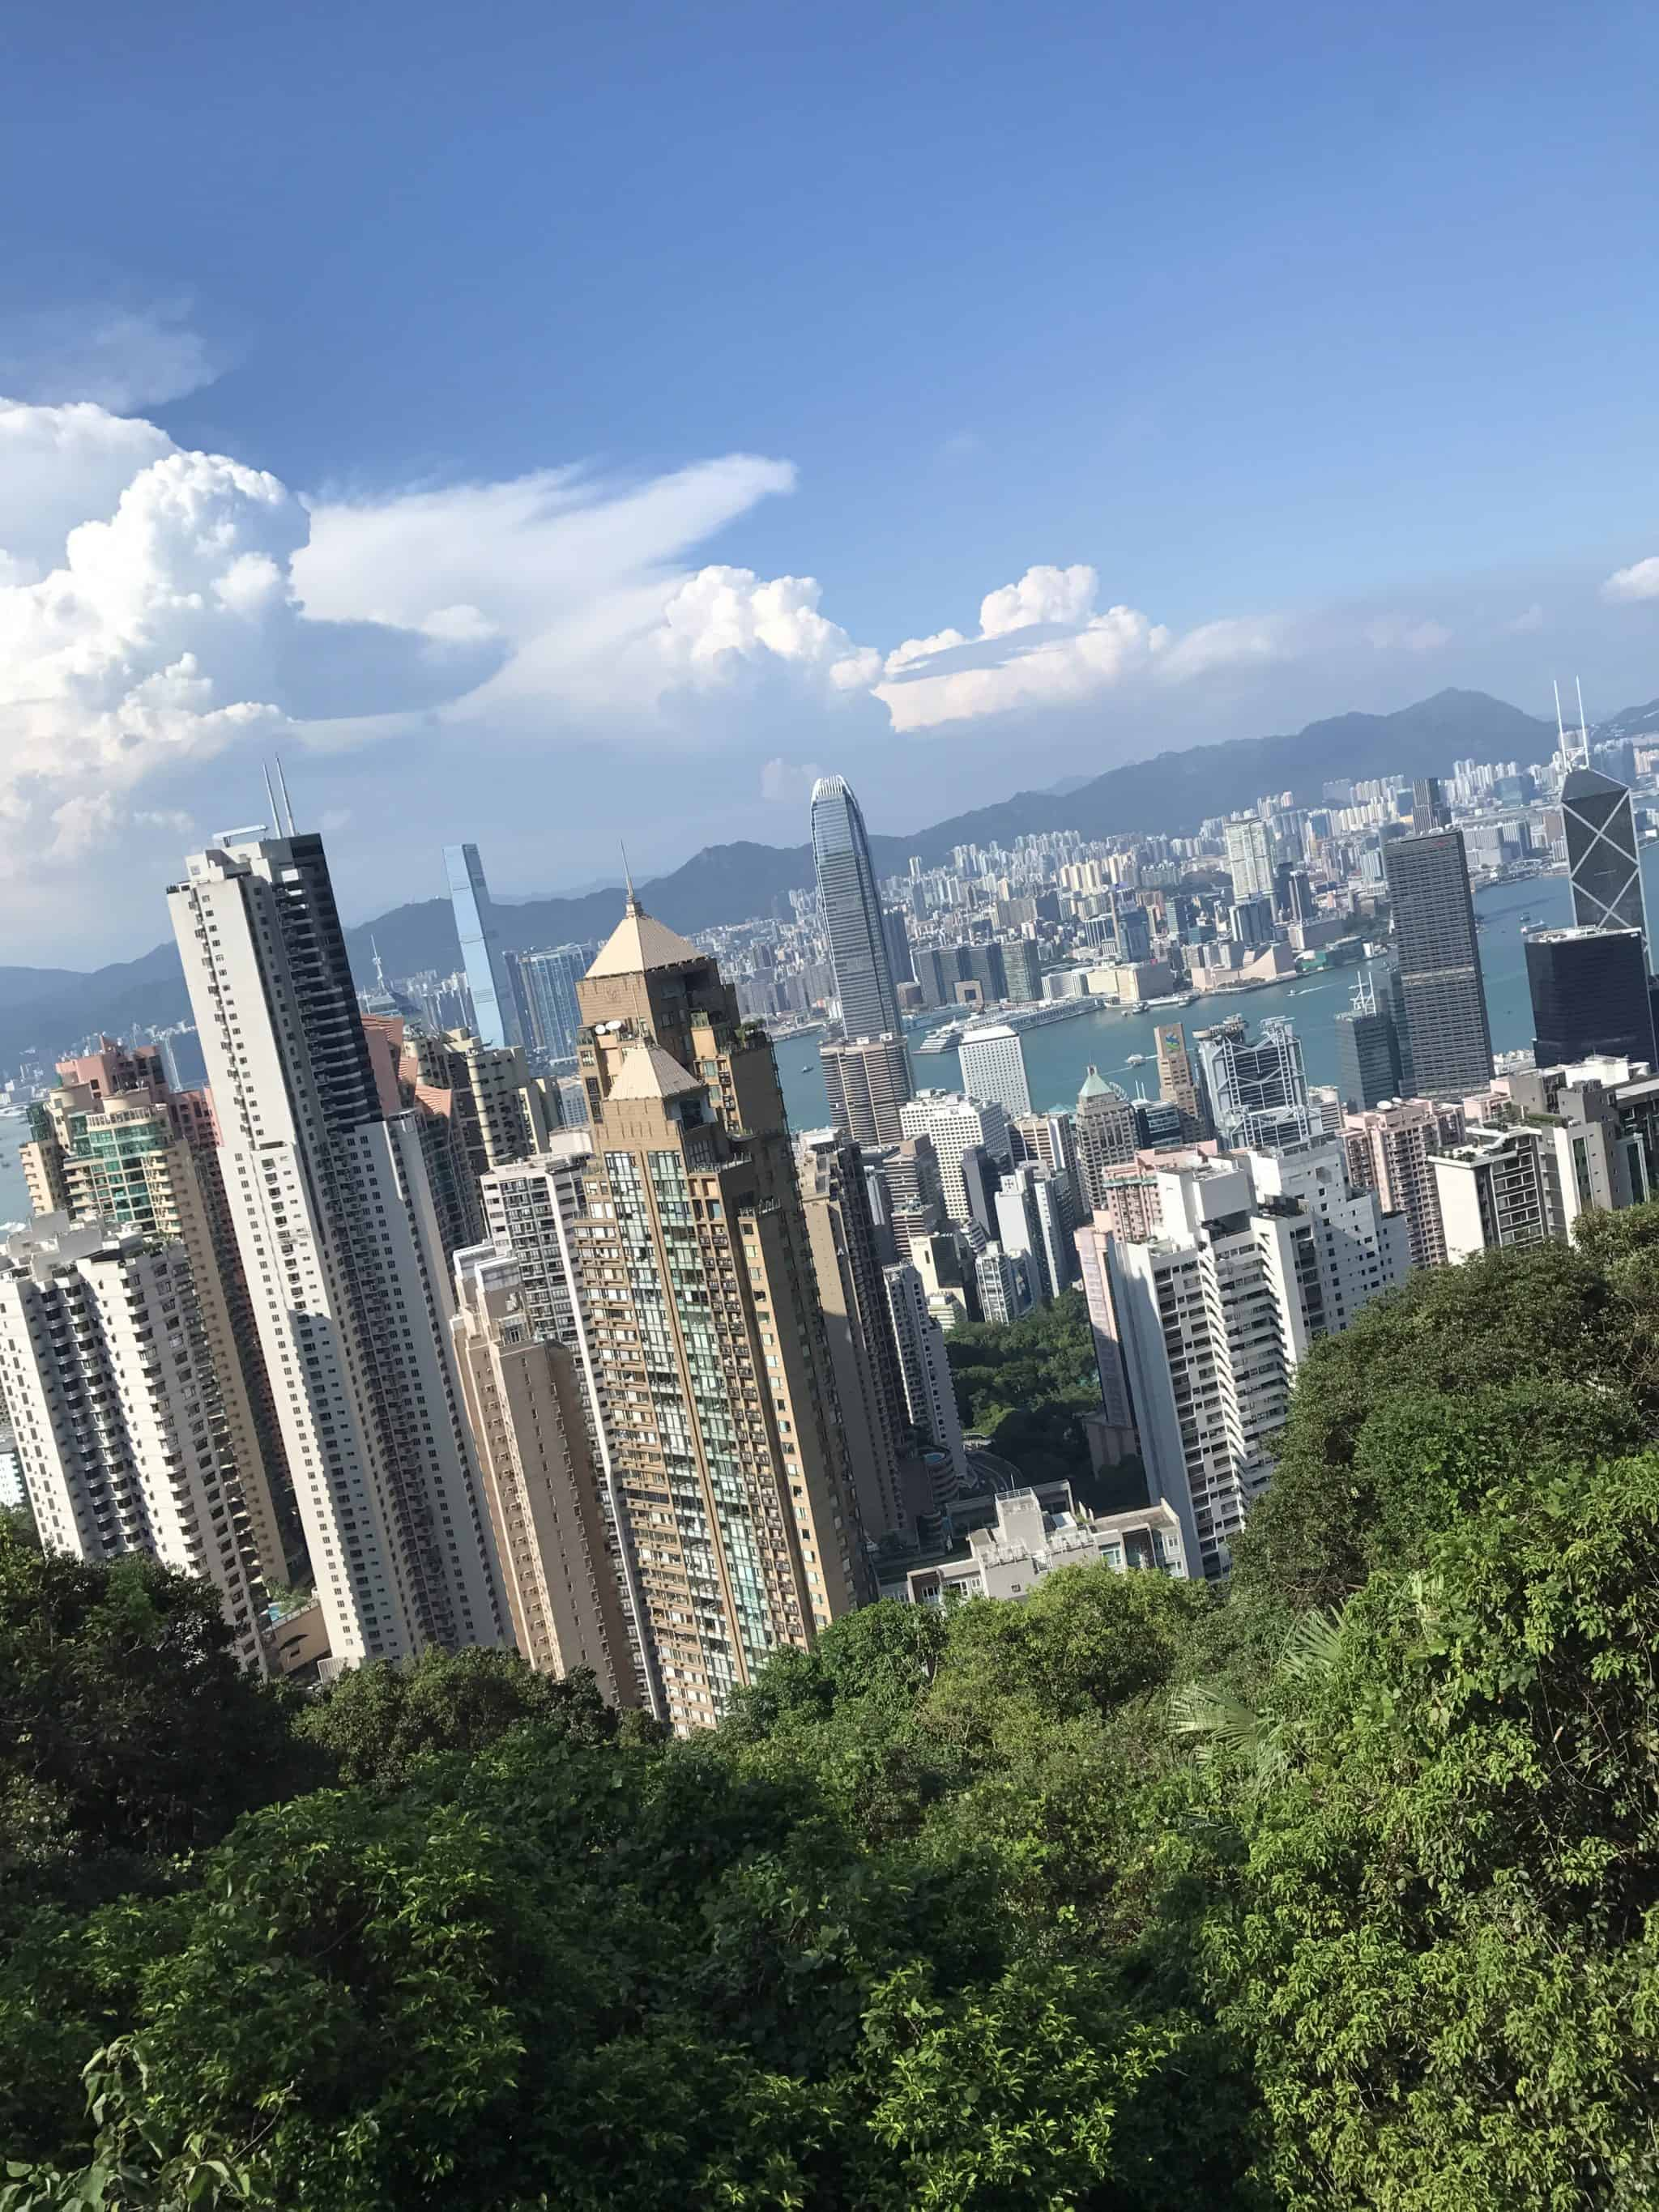 3 days in Hong kong, what to do in Hong Kong, Hong Kong itinerary 3 days, hong kong itinerary, hong kong island, hong kong main land, where to stay in hong kong, Victoria Peak